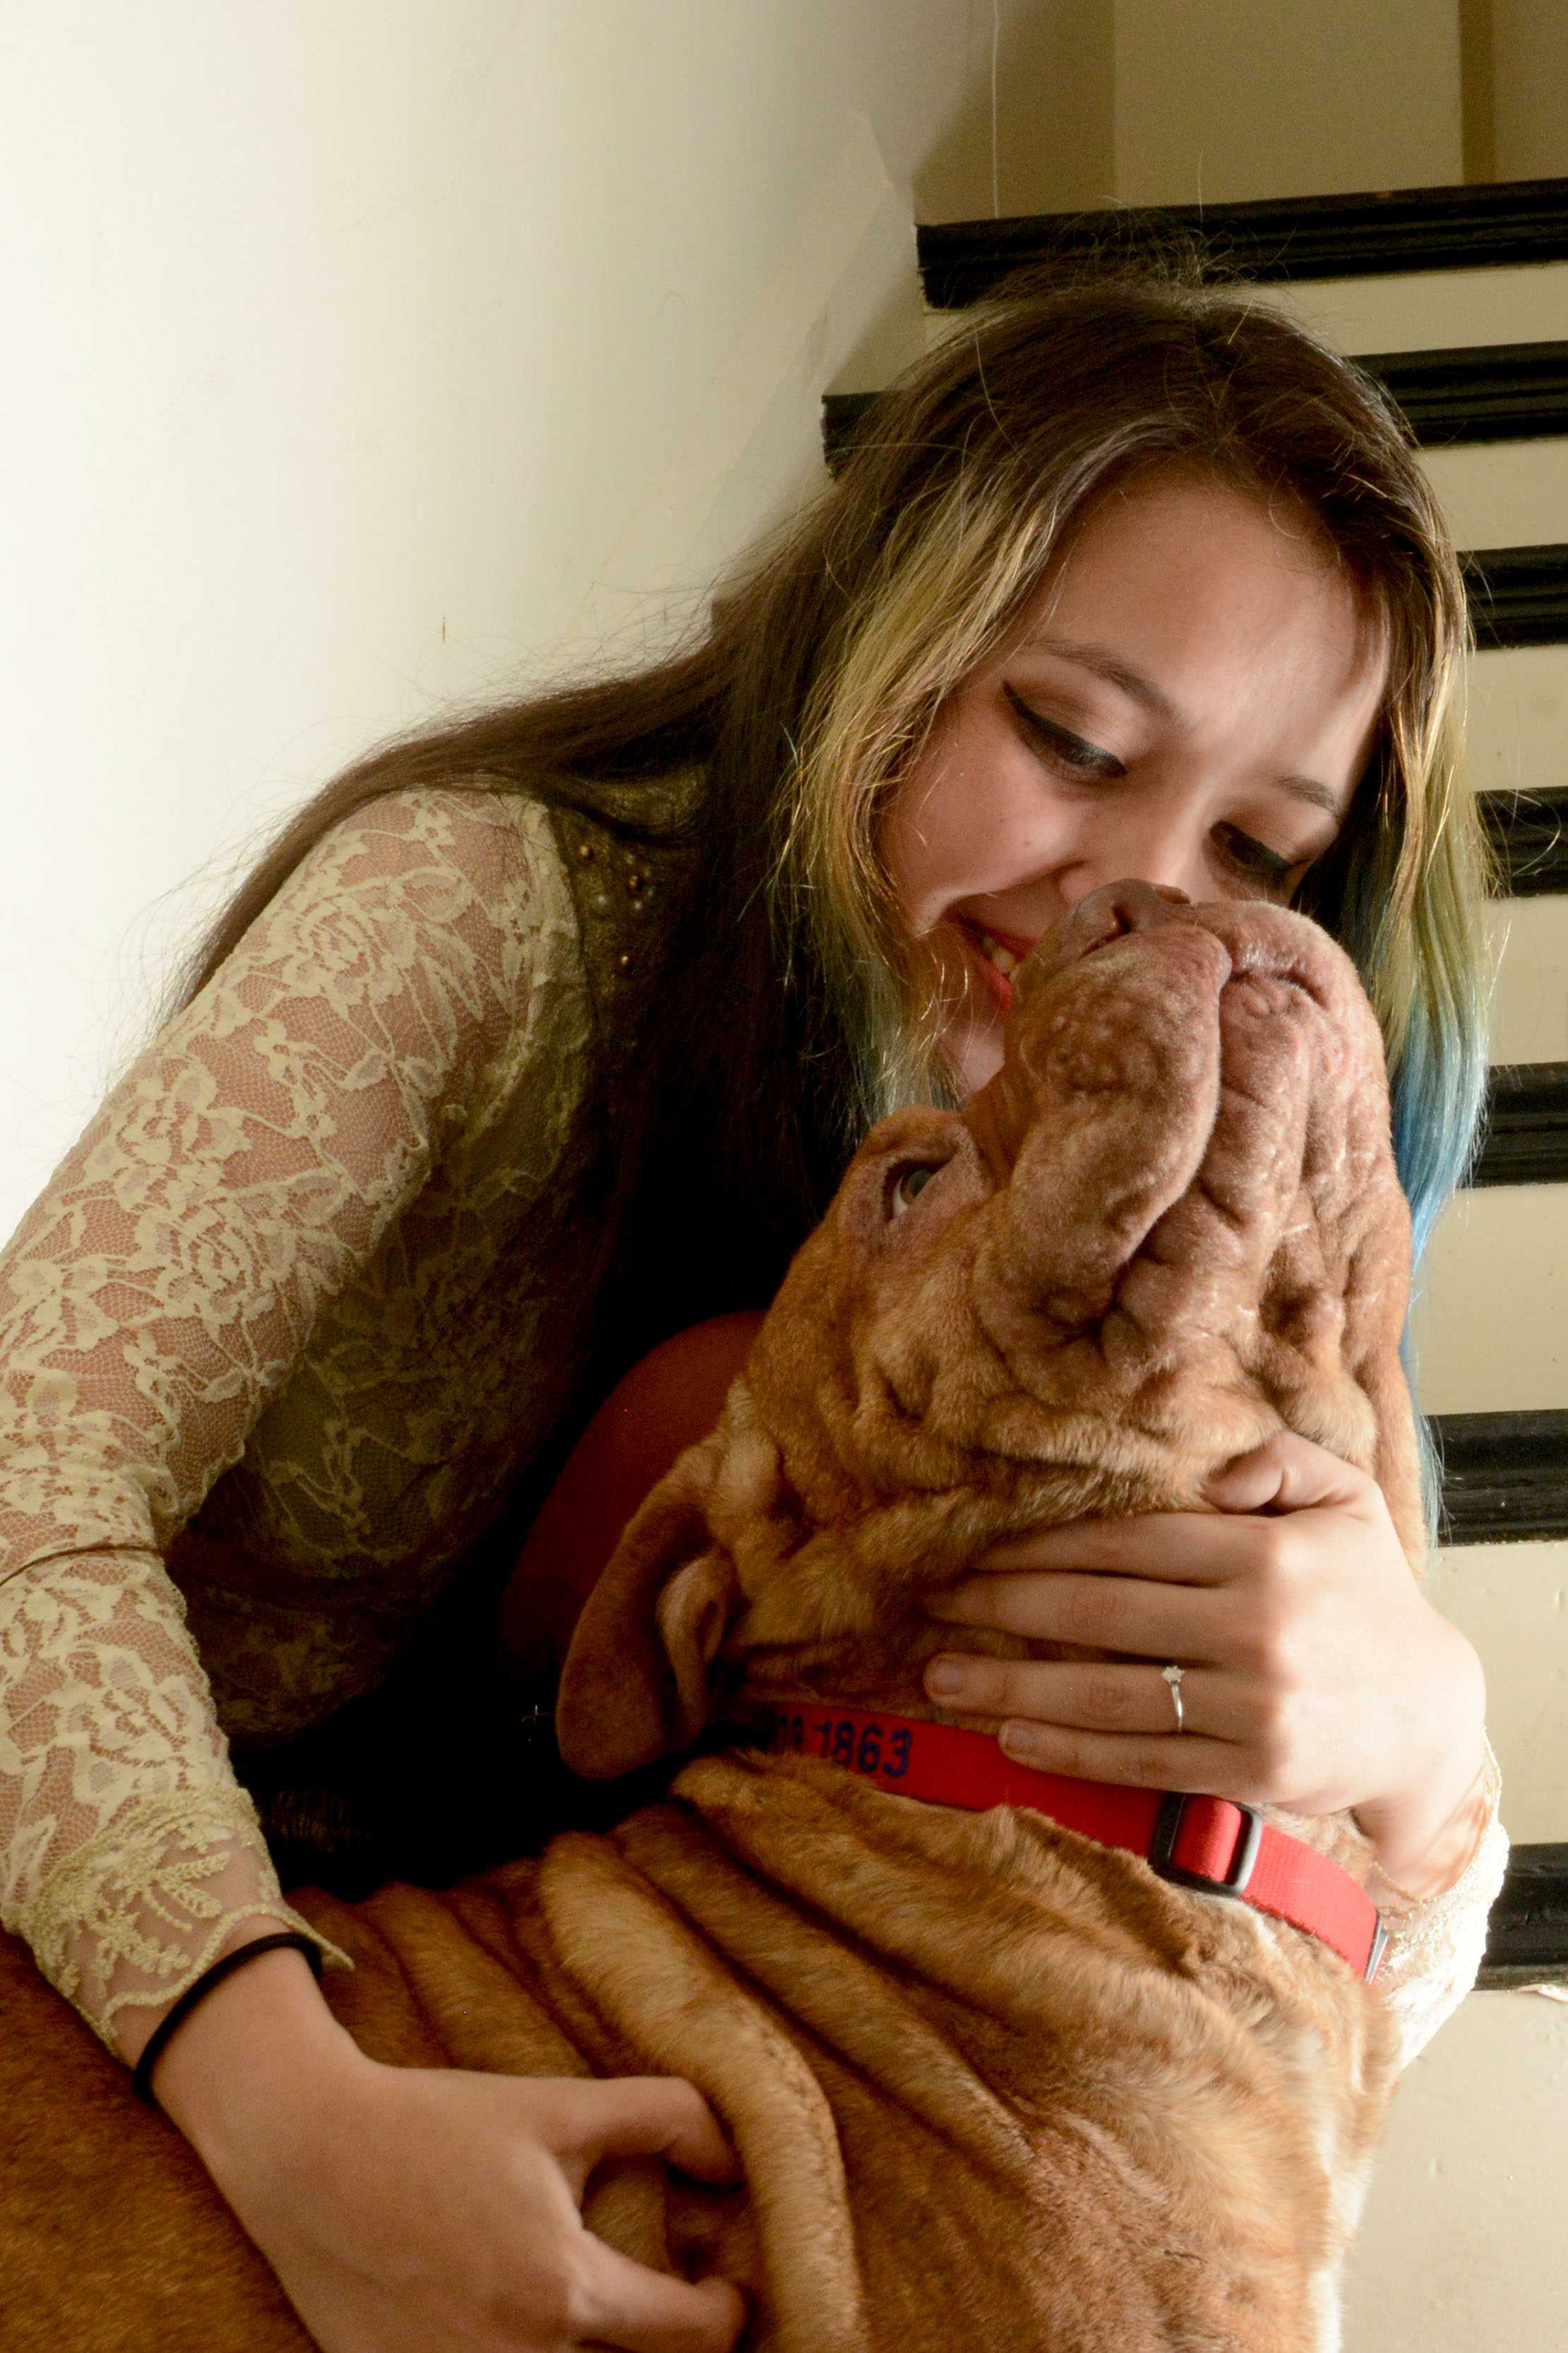 Pamela Ortiz plays with her dog, Zelda, in her San Francisco home. Photo by Aaron Levy-Wolins.